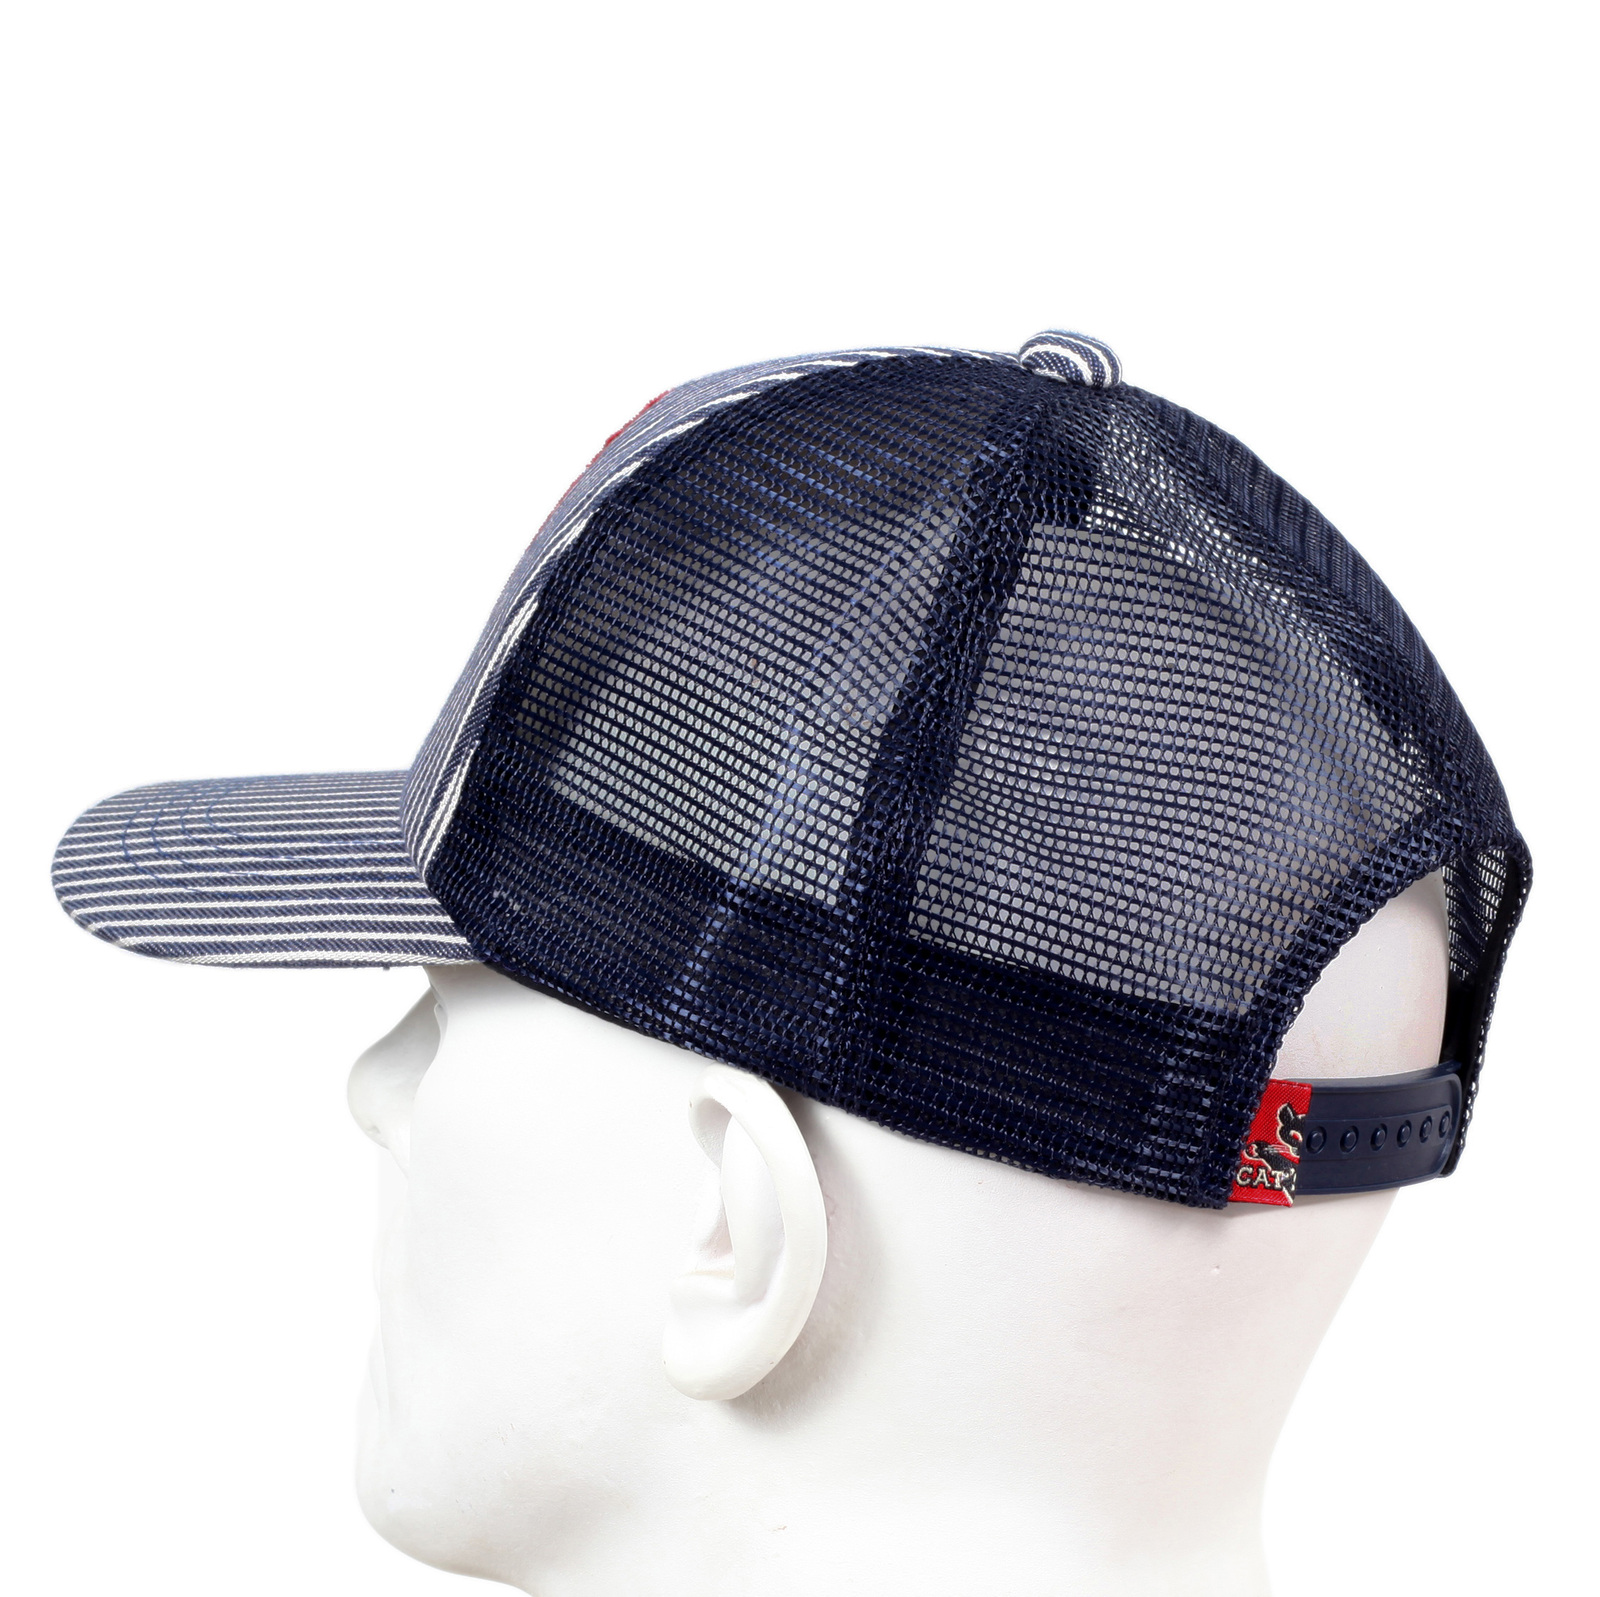 Navy Mesh Back Hickory Wide Striped Truckers Cap for Men by Cats Paw  CANE5732 8f64fd07646